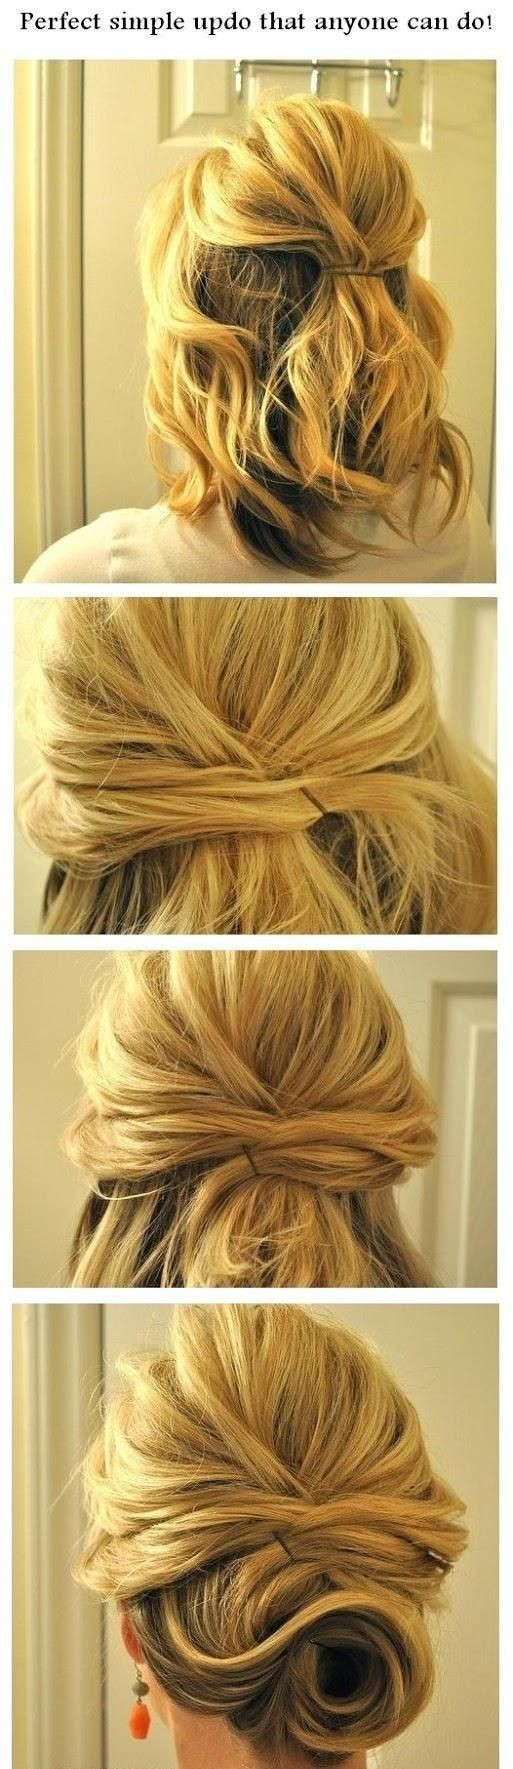 Perfect tutorial for simple updos